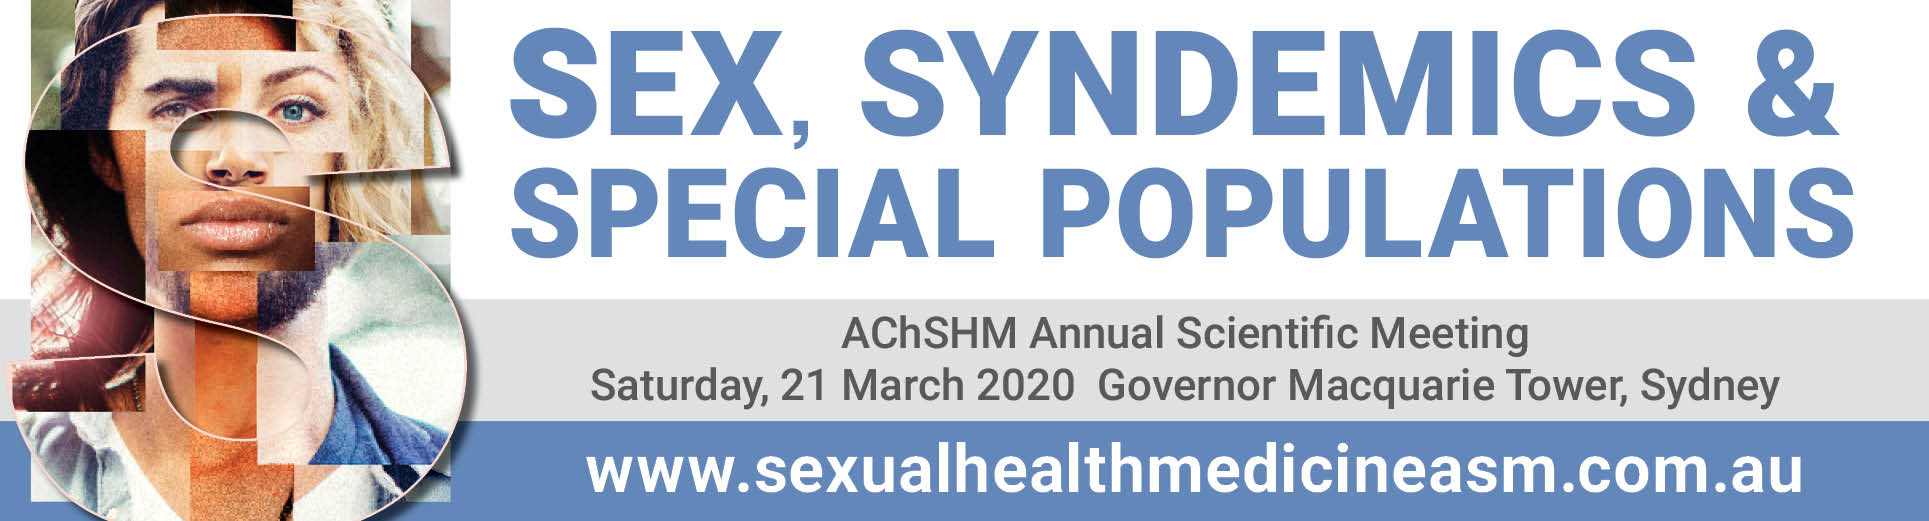 AChSHM Annual Scientific Meeting 2020